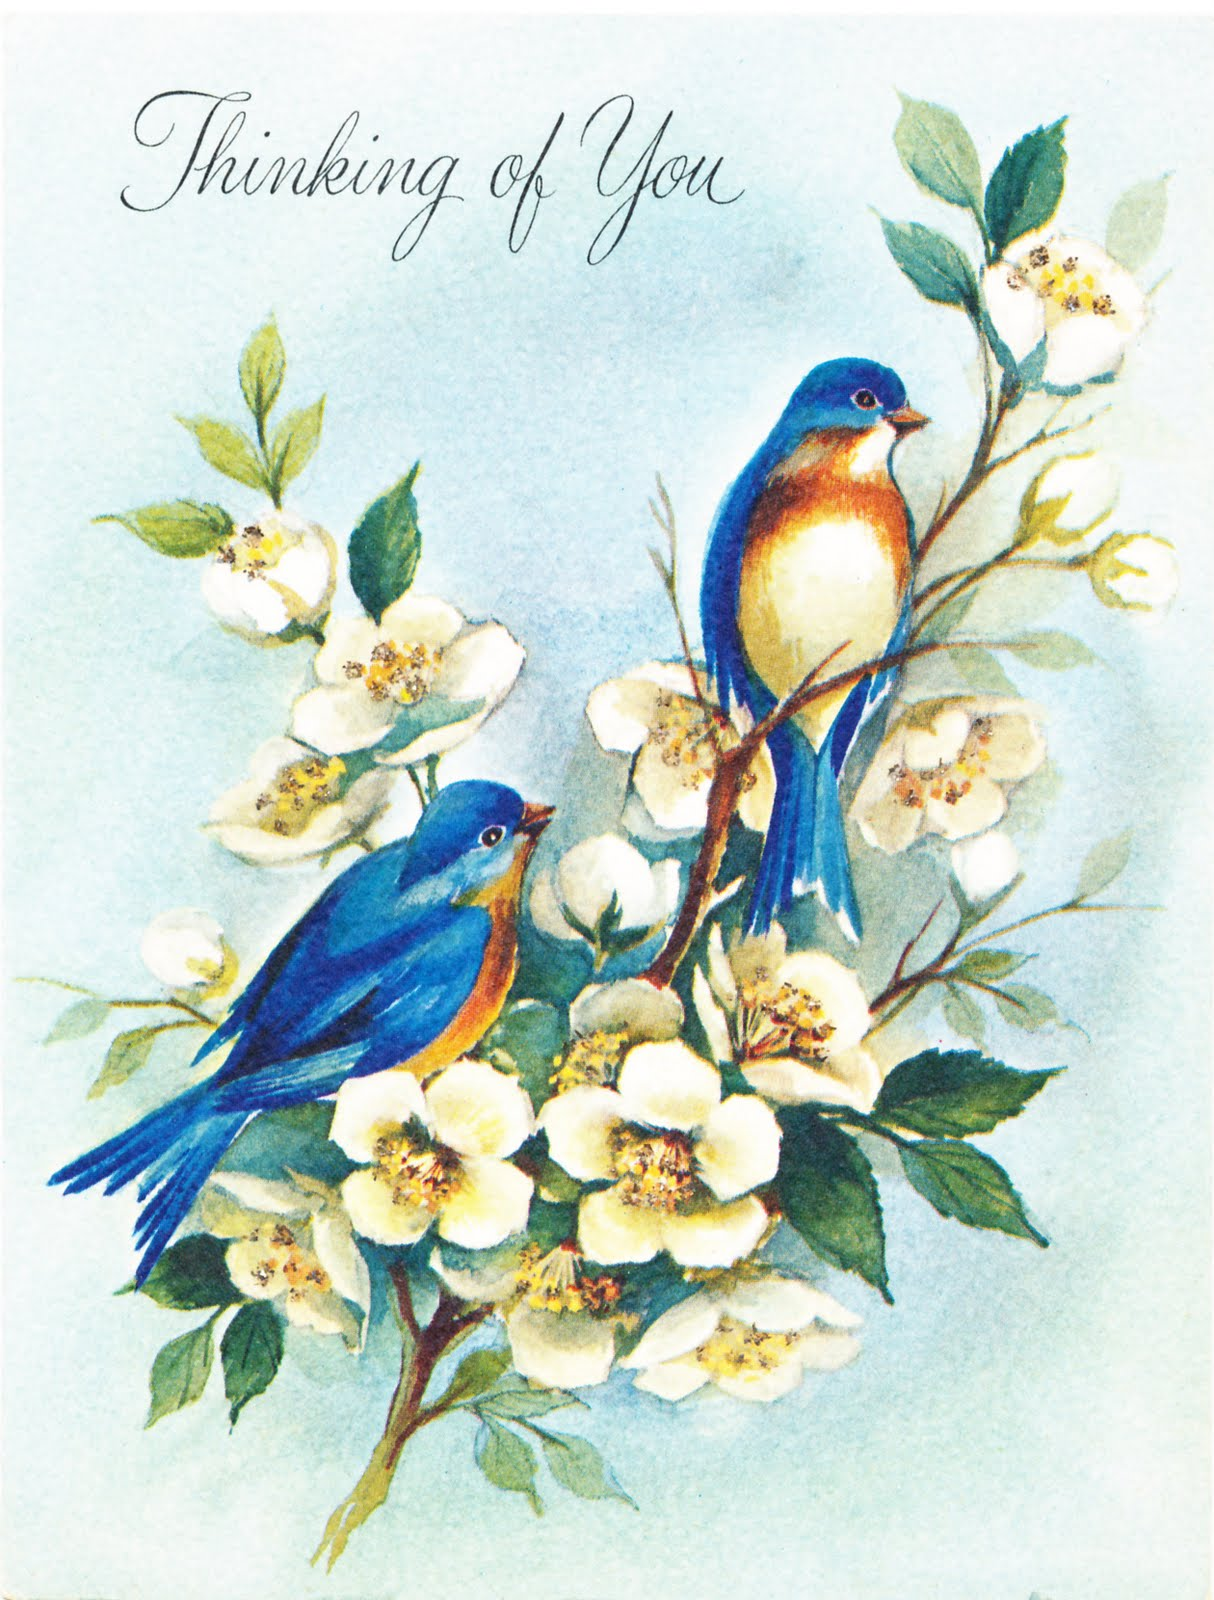 Collage Candy: Bird images from vintage greeting cards